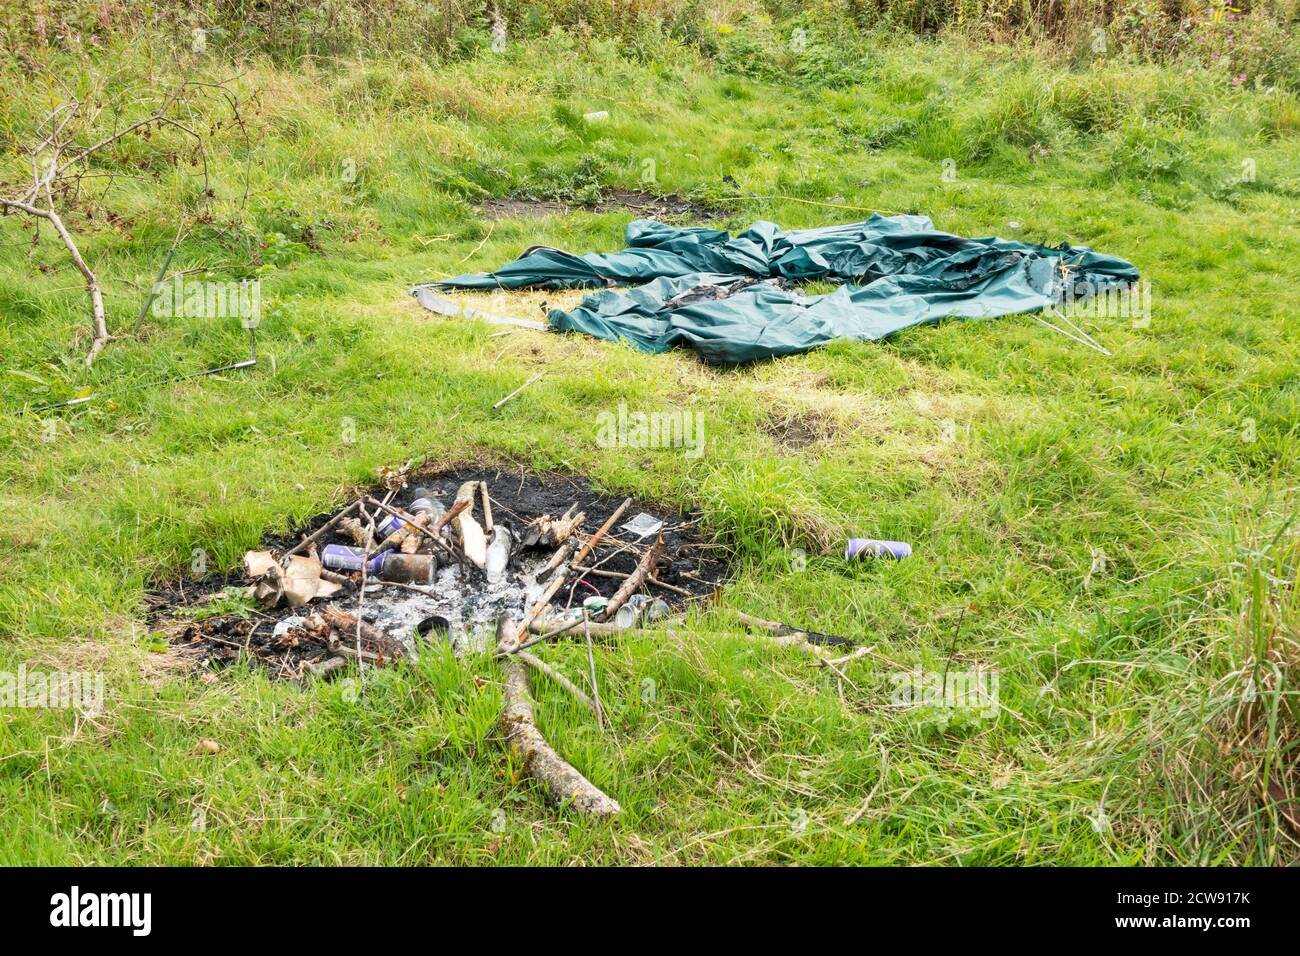 Abandoned tent and camp fire with discarded drinks cans and bottles, illegal camping, north east England, UK Stock Photo